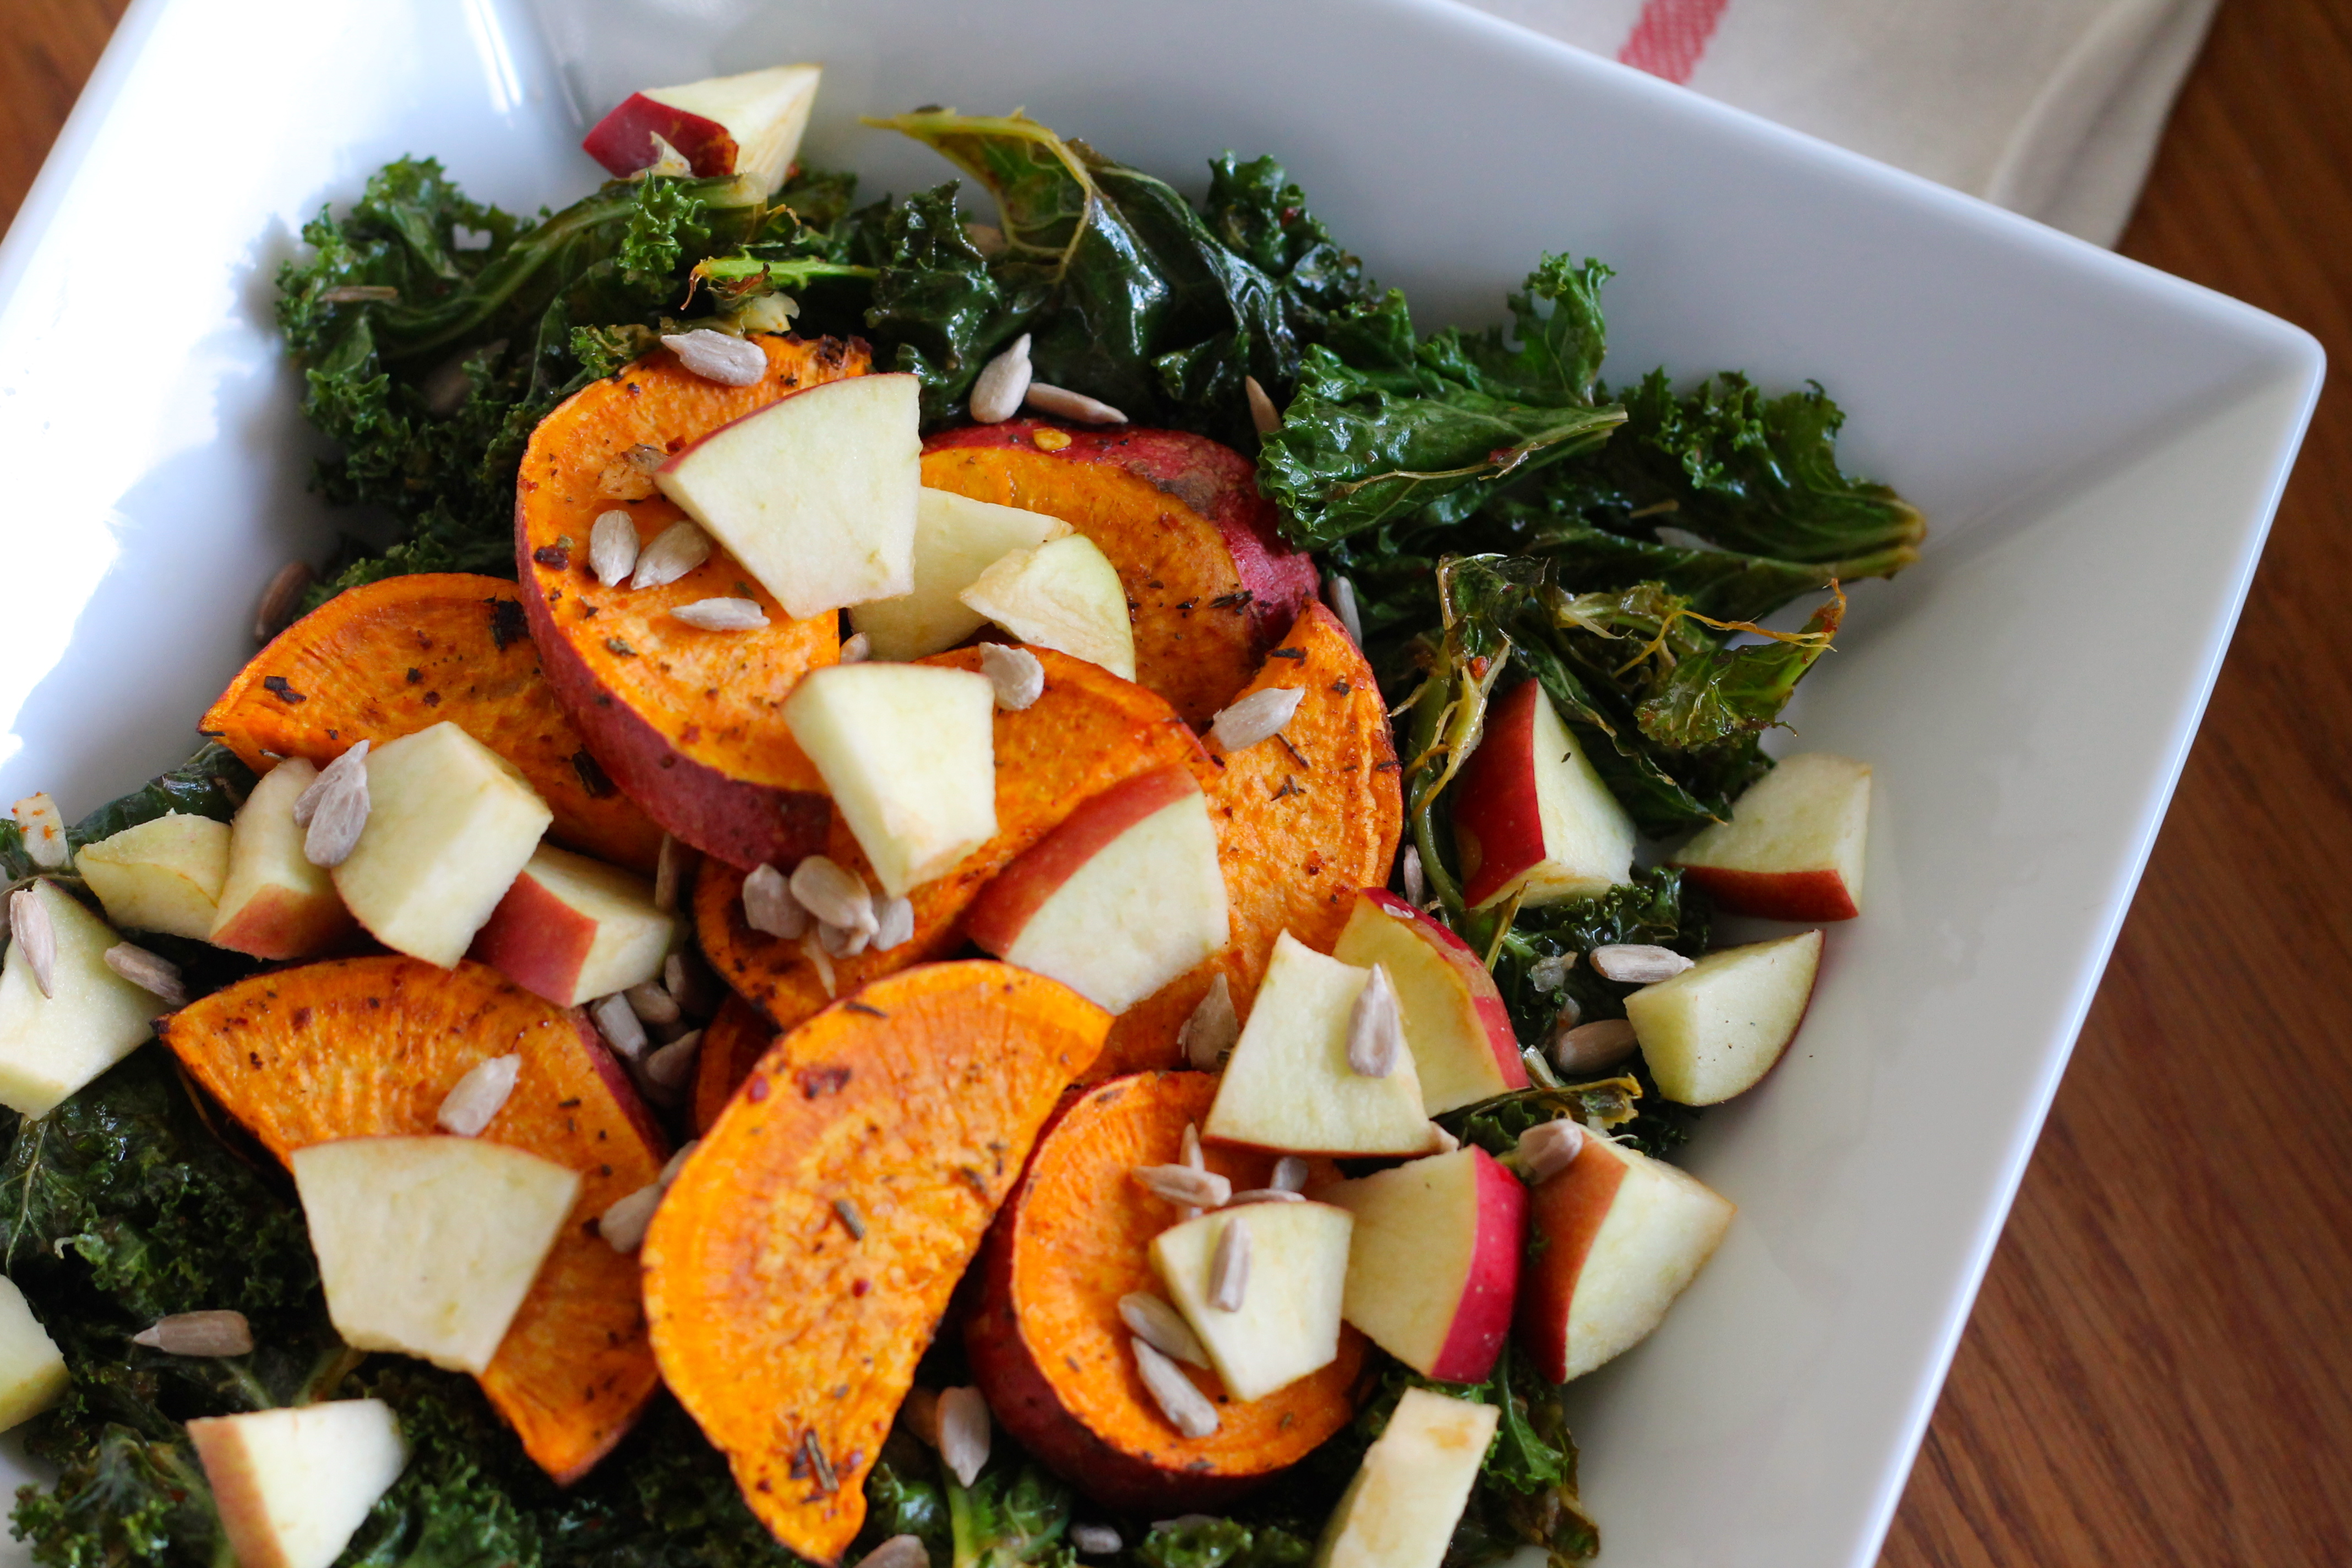 Warm salad with roasted kale, sweet potatoes, apples, and sunflower seeds